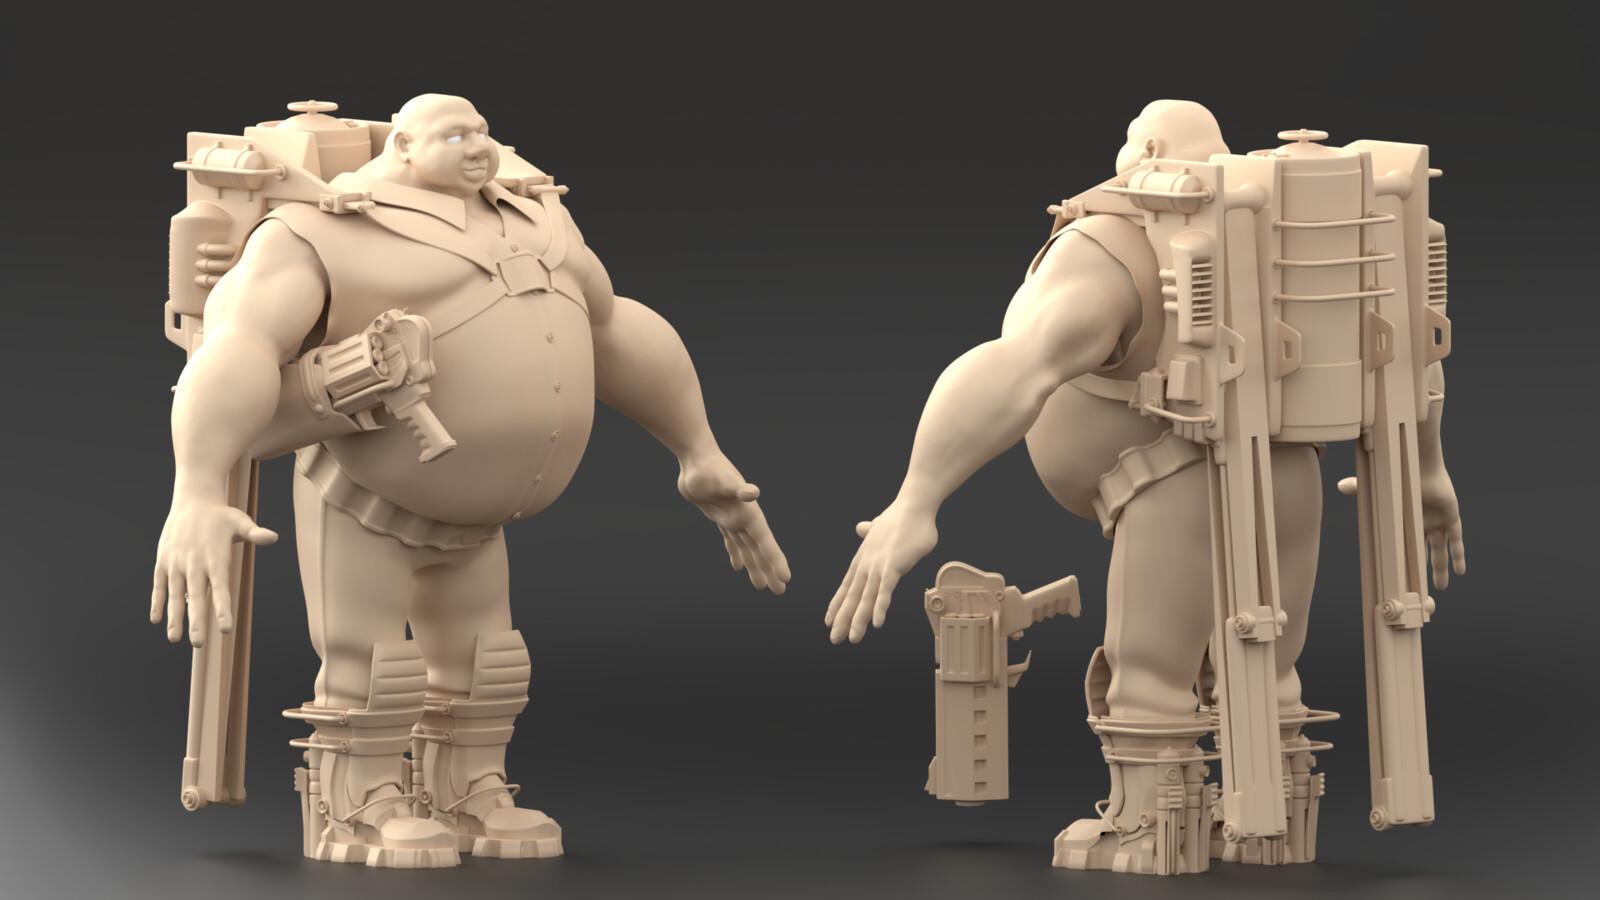 High-poly clay sculpt/model